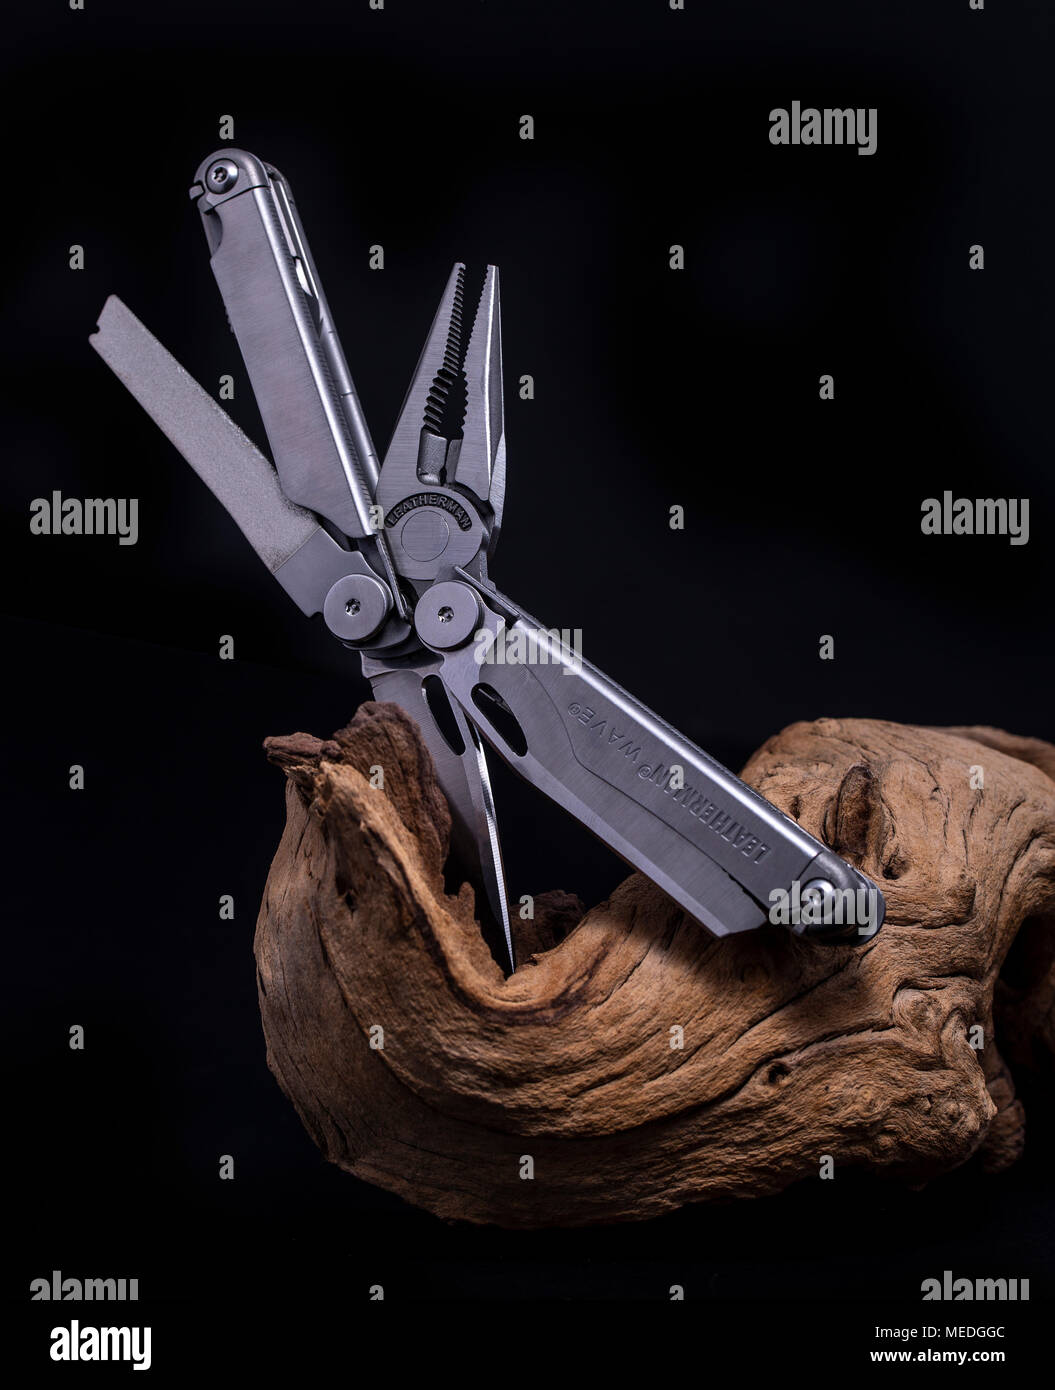 SWINDON, UK - APRIL 22, 2018: Leatherman Wave multitool on a black background - Stock Image